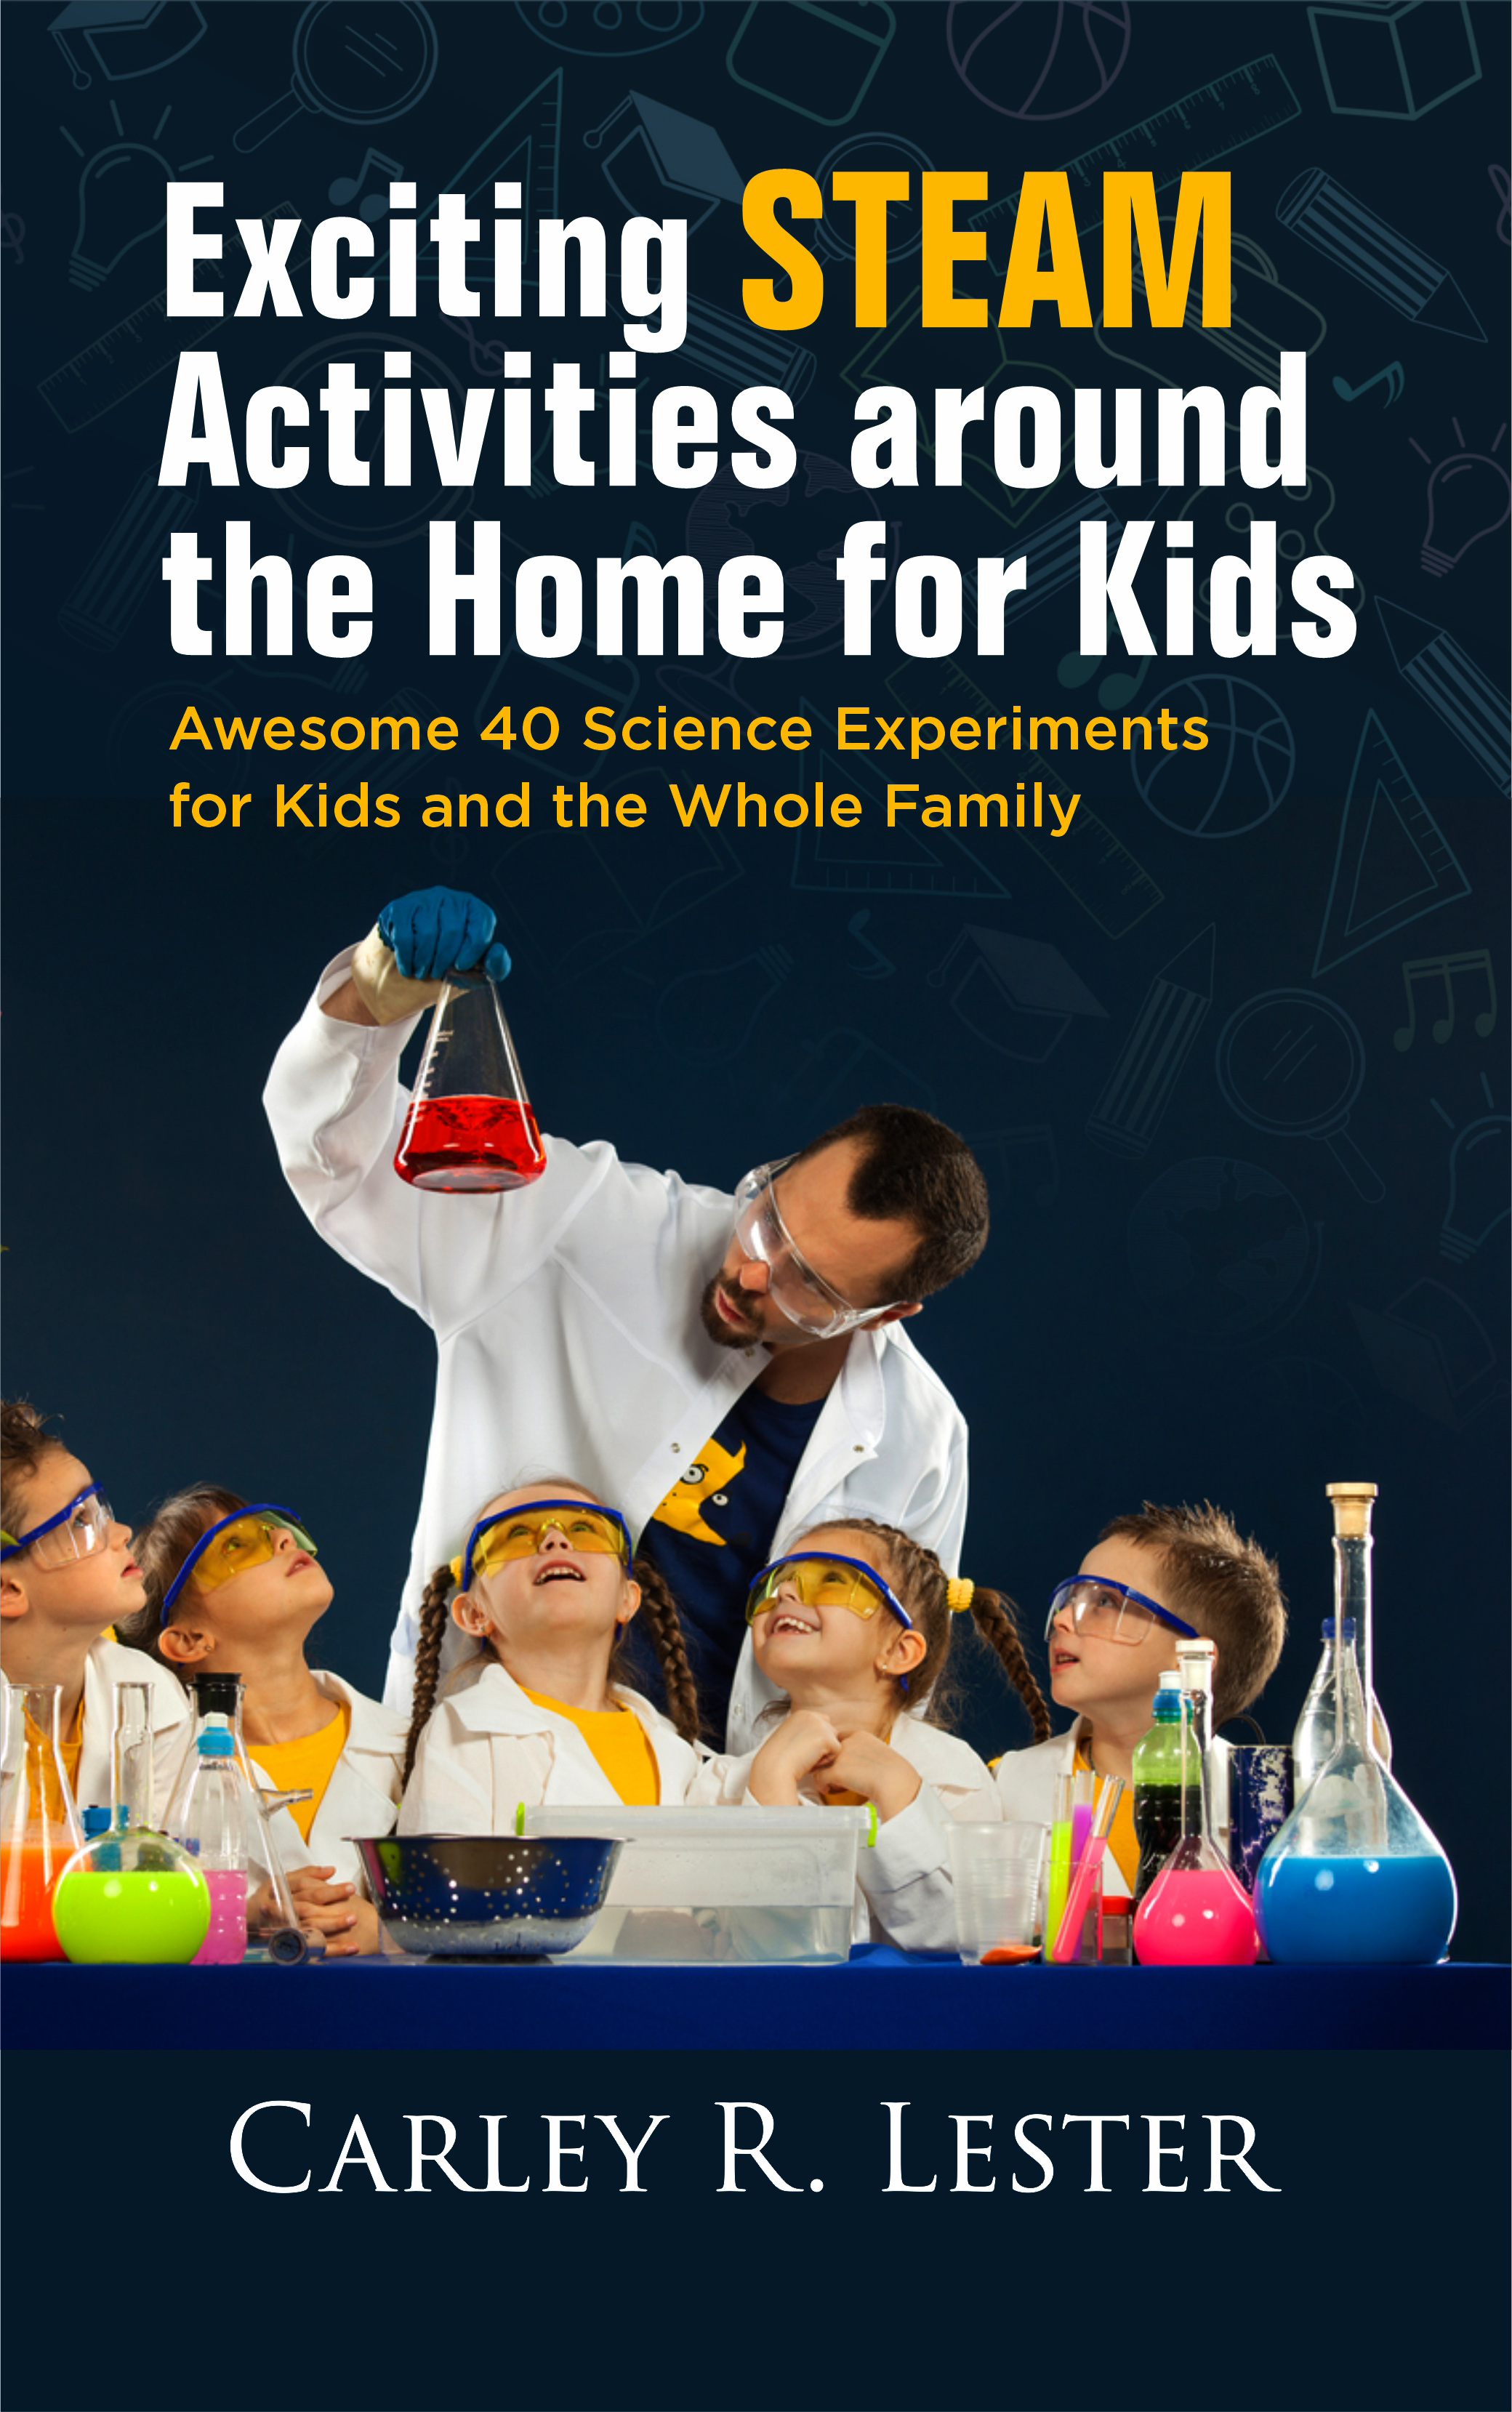 Exciting steam activities around the home for kids